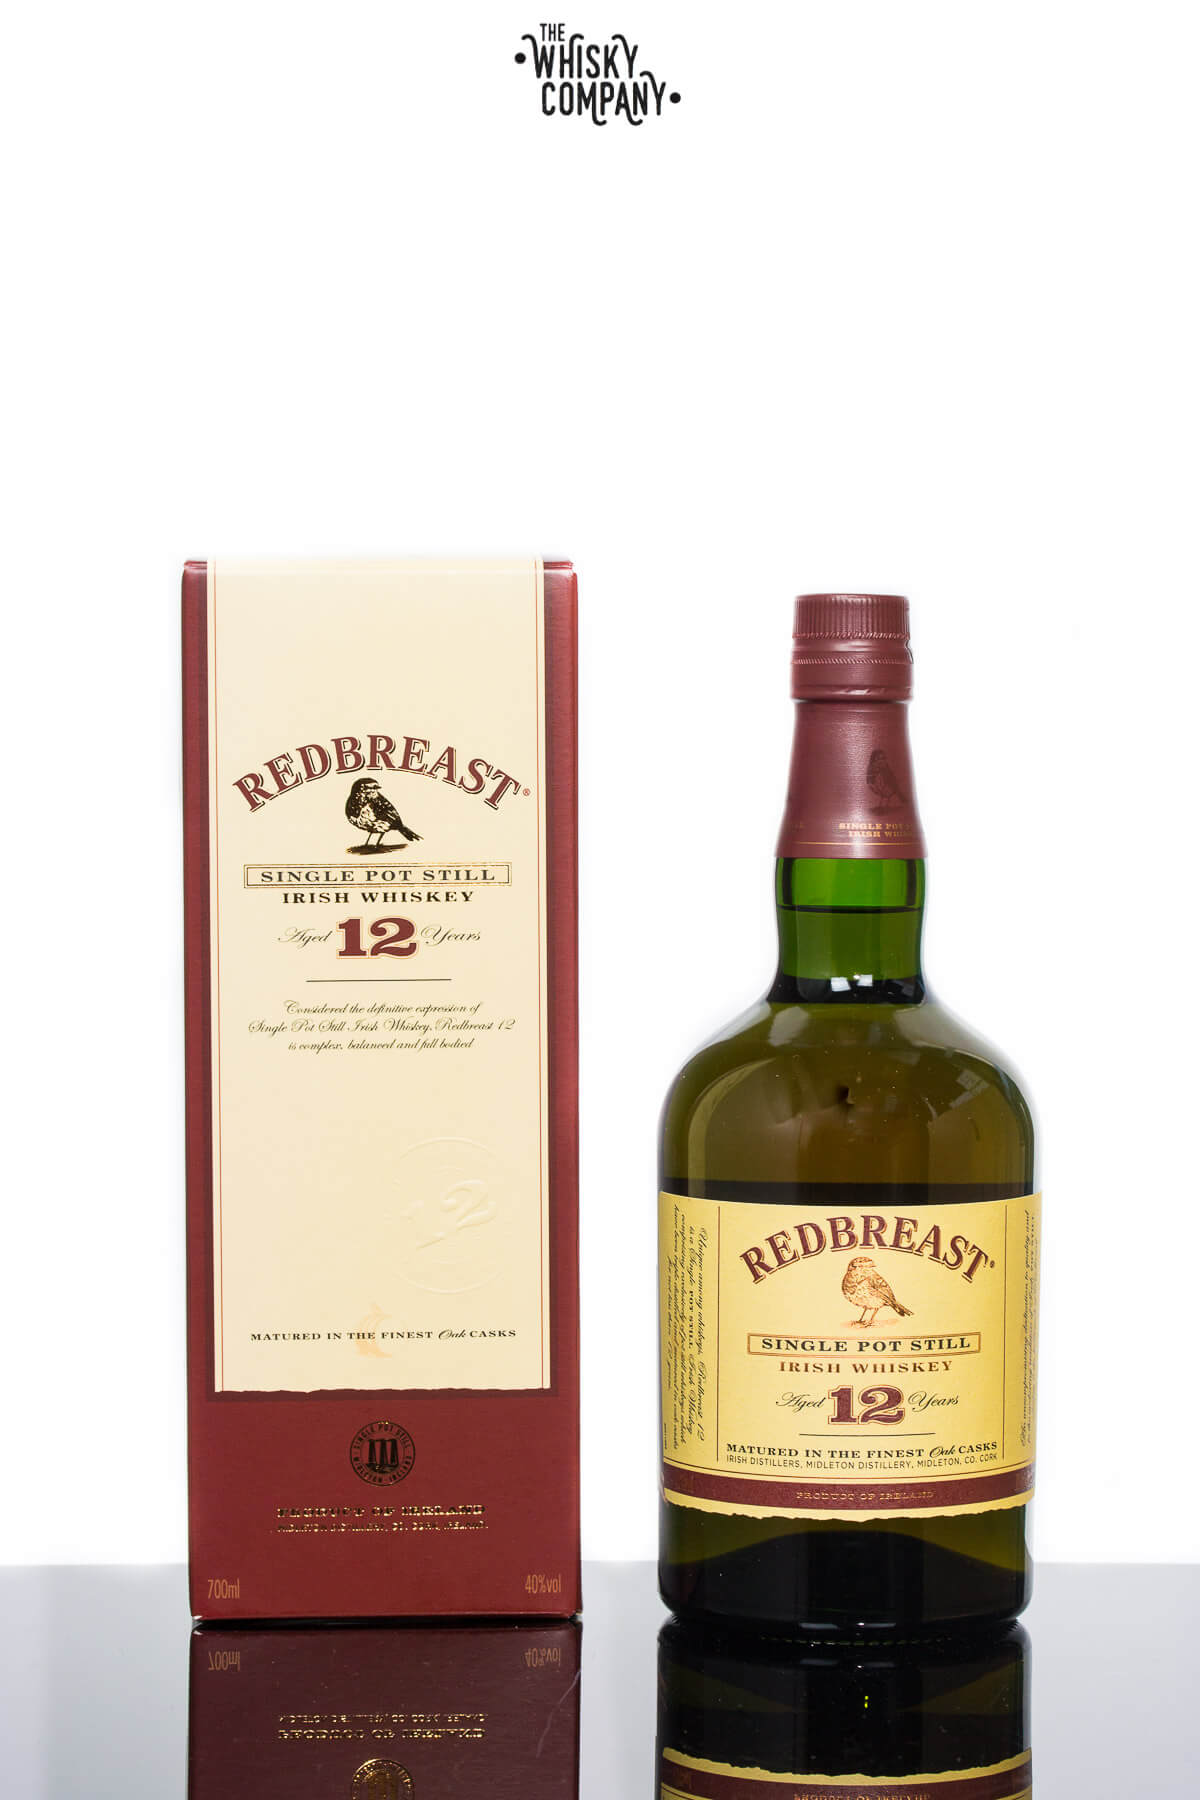 Redbreast Aged 12 Years Irish Single Pot Still Whiskey